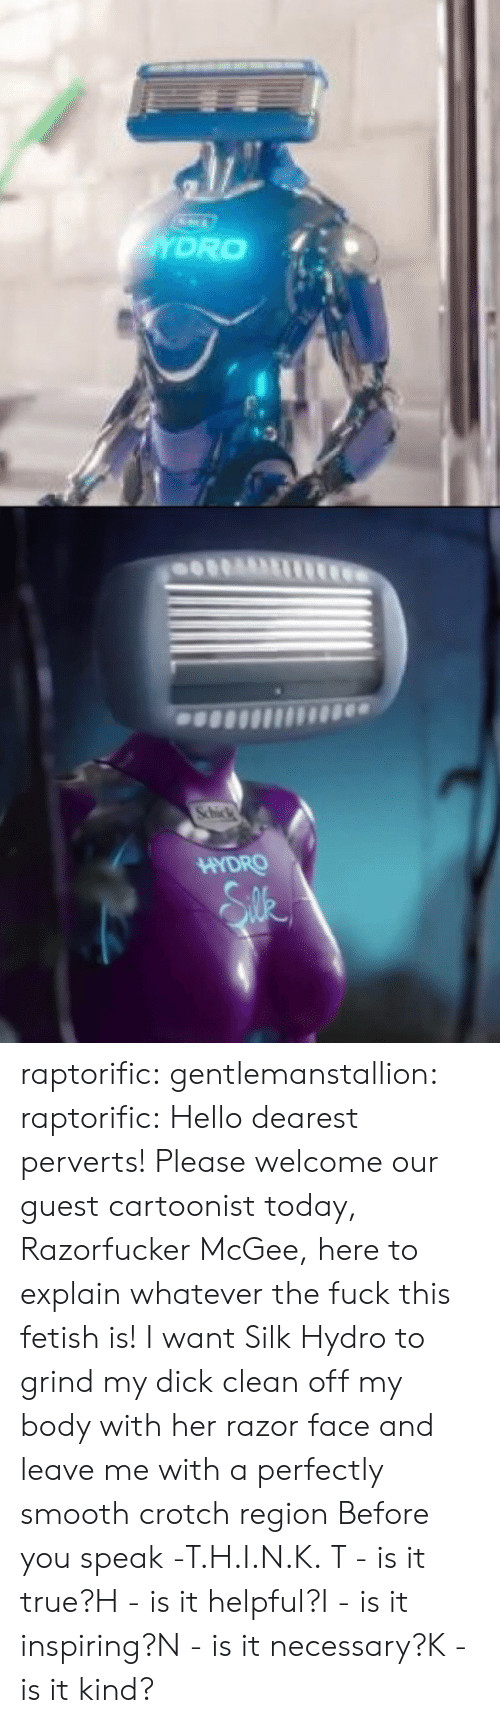 hydro: HYDRO raptorific: gentlemanstallion:   raptorific: Hello dearest perverts! Please welcome our guest cartoonist today, Razorfucker McGee, here to explain whatever the fuck this fetish is! I want Silk Hydro to grind my dick clean off my body with her razor face and leave me with a perfectly smooth crotch region   Before you speak -T.H.I.N.K. T - is it true?H - is it helpful?I - is it inspiring?N - is it necessary?K - is it kind?